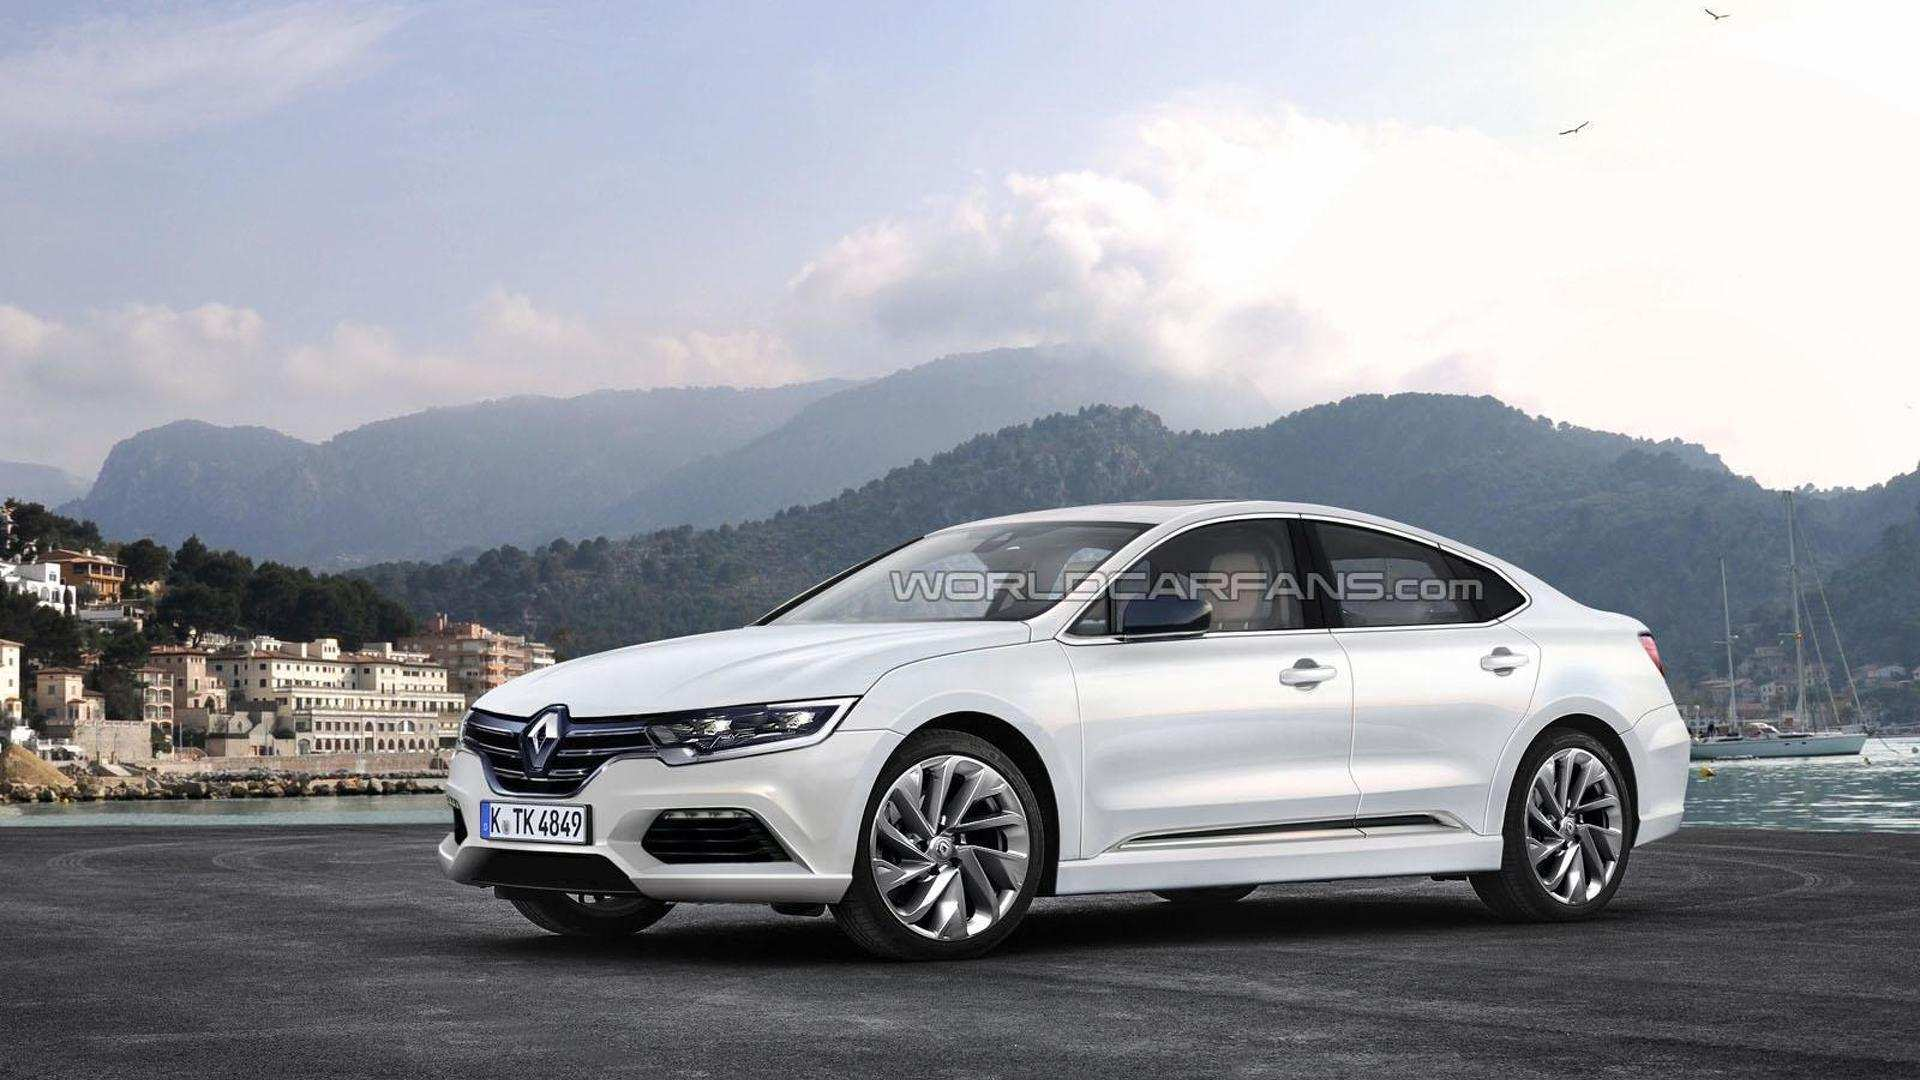 83 Gallery of Renault Laguna 2019 First Drive with Renault Laguna 2019